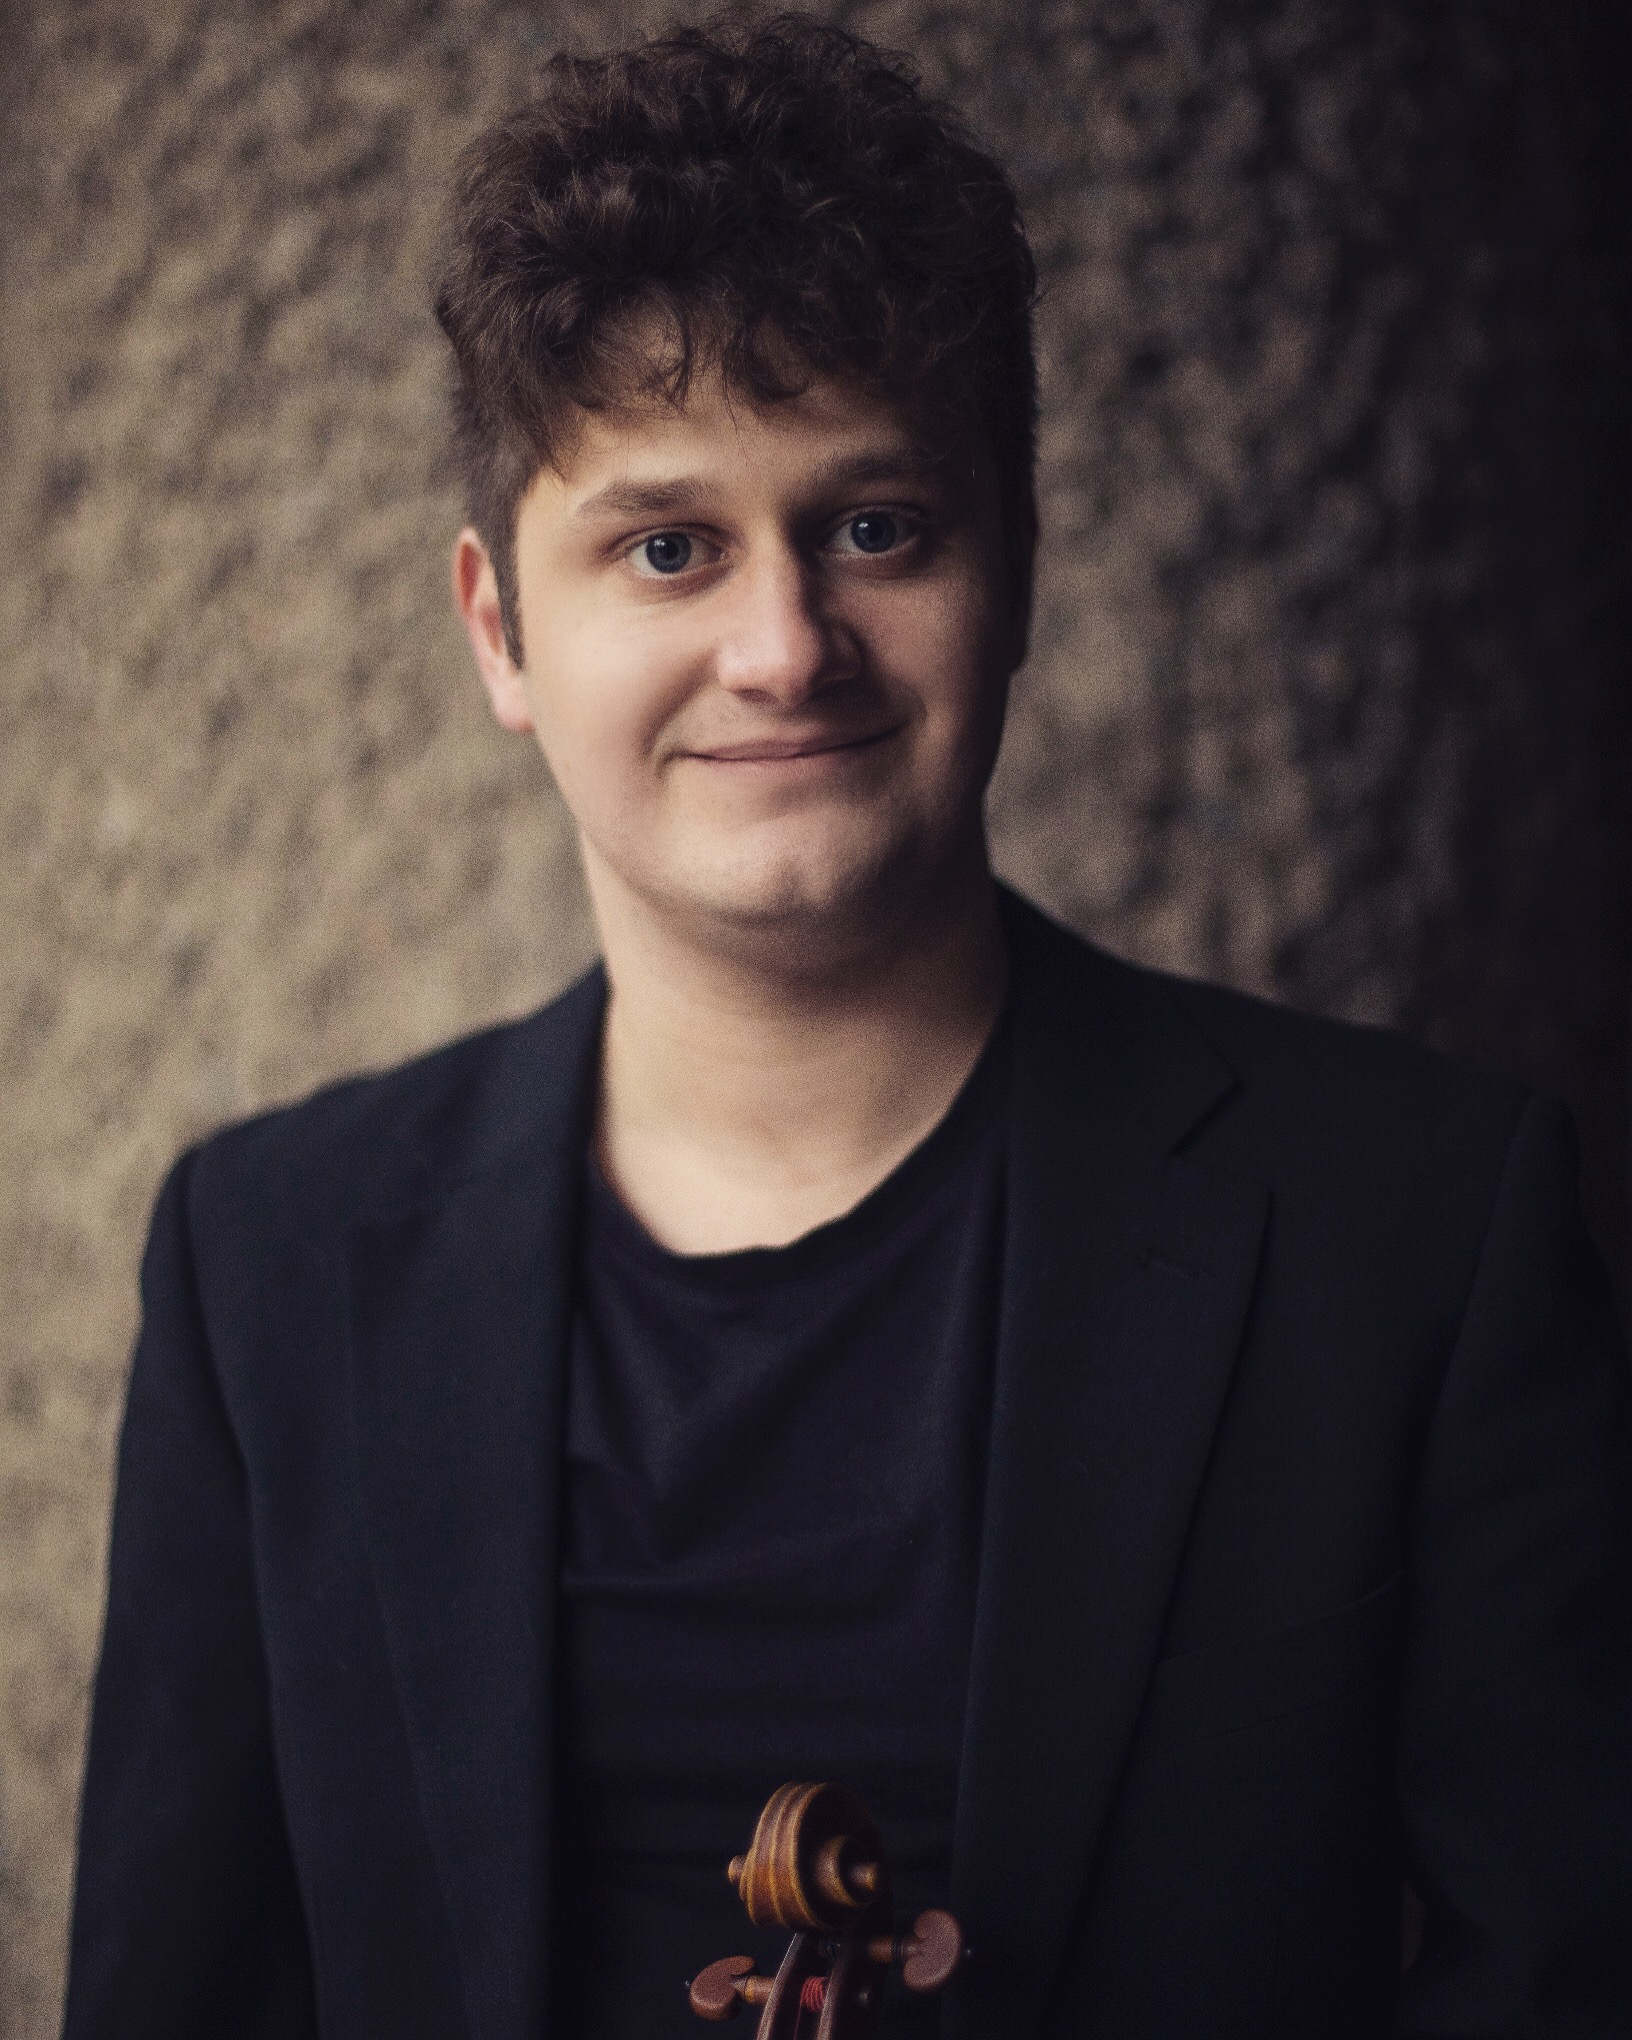 Oliver Cave - Violin IIOliver was born in 1992, and grew up in Ashford in Kent. He began to learn the violin at the age of 6. An alumnus of the renowned Yehudi Menuhin School and a graduate of Guildhall School of Music & Drama, Oliver has studied with Natasha Boyarskaya, Simon Fischer, Pavlo Beznosiuk and Alexander Janiczek.As a lover of a wide range of music, he performs music on both modern and period instruments, and has played with groups such as the Philharmonia Orchestra, La Serenissima, Academy of Ancient Music, Orchestra of the Age of Enlightenment, City of Birmingham Symphony Orchestra, Scottish Chamber Orchestra and Royal Northern Sinfonia.